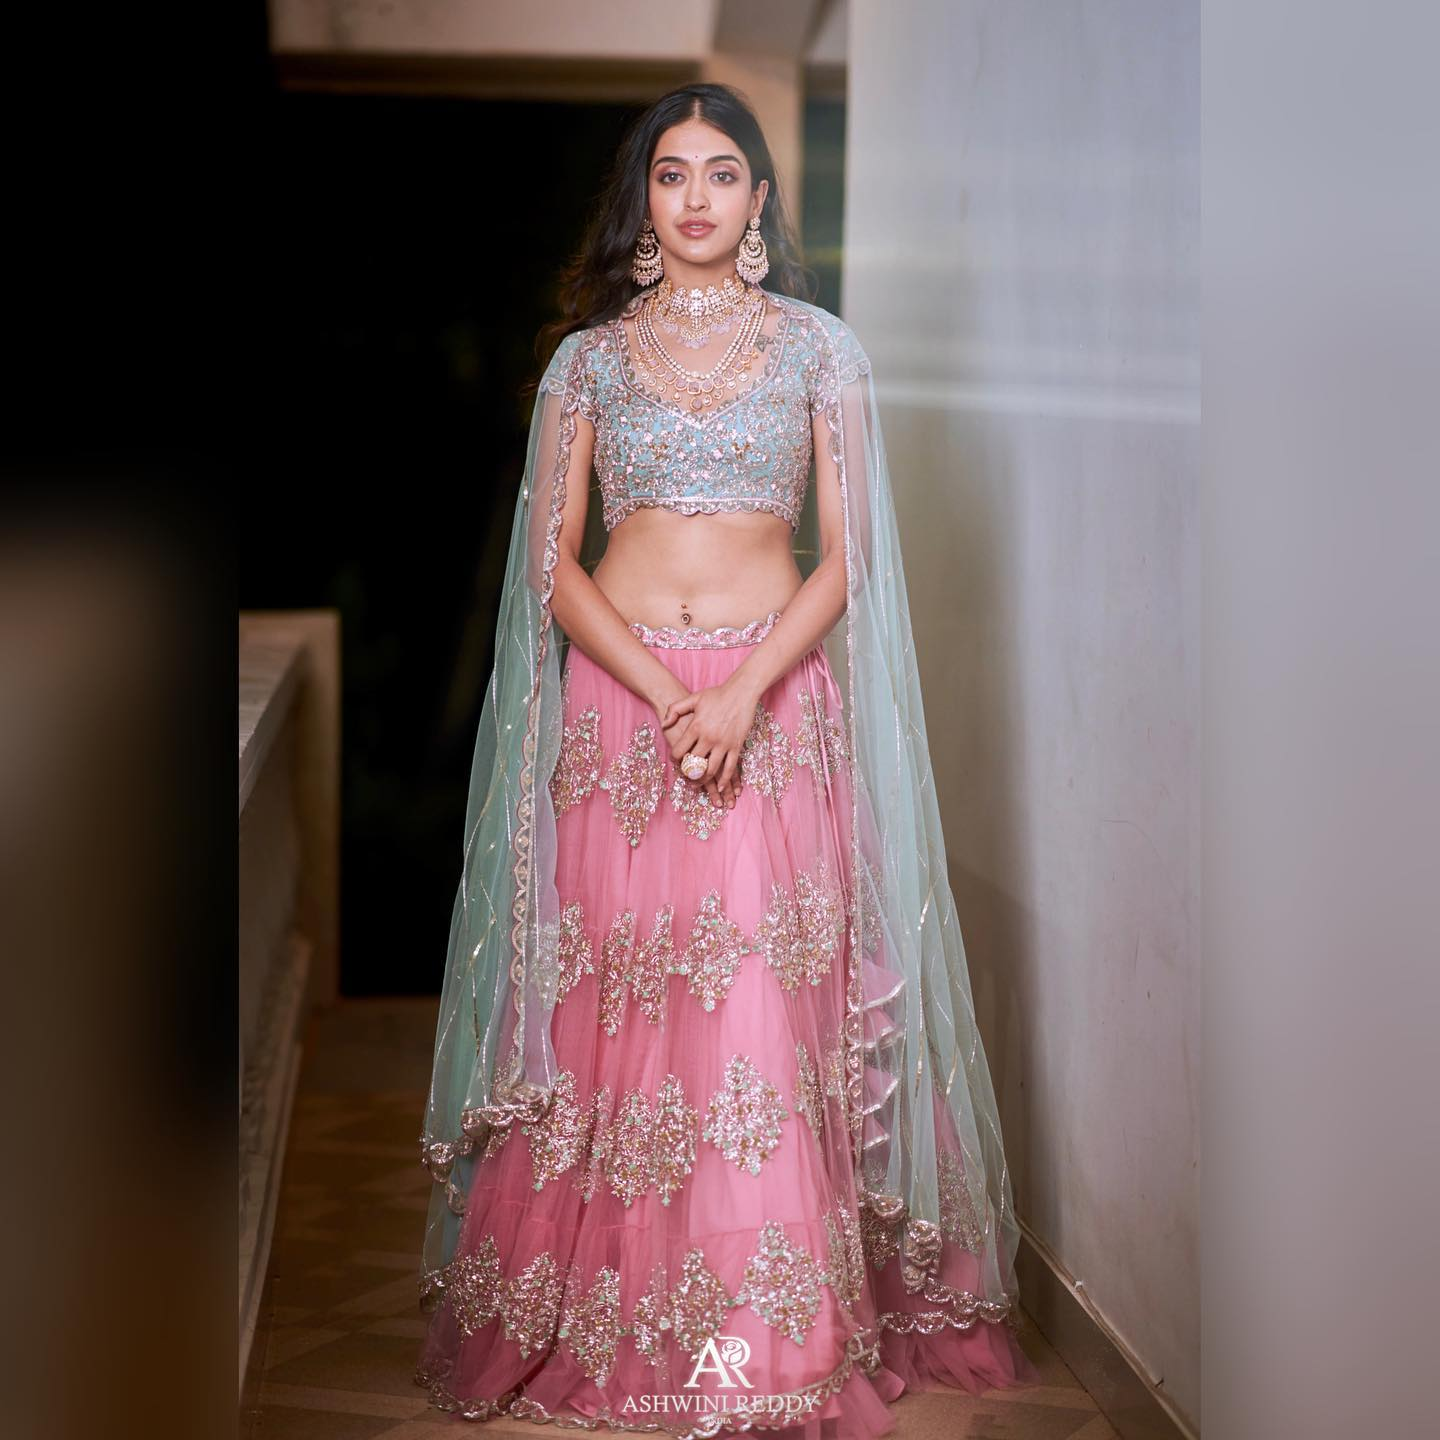 Ashwini Reddy X pmj_jewels